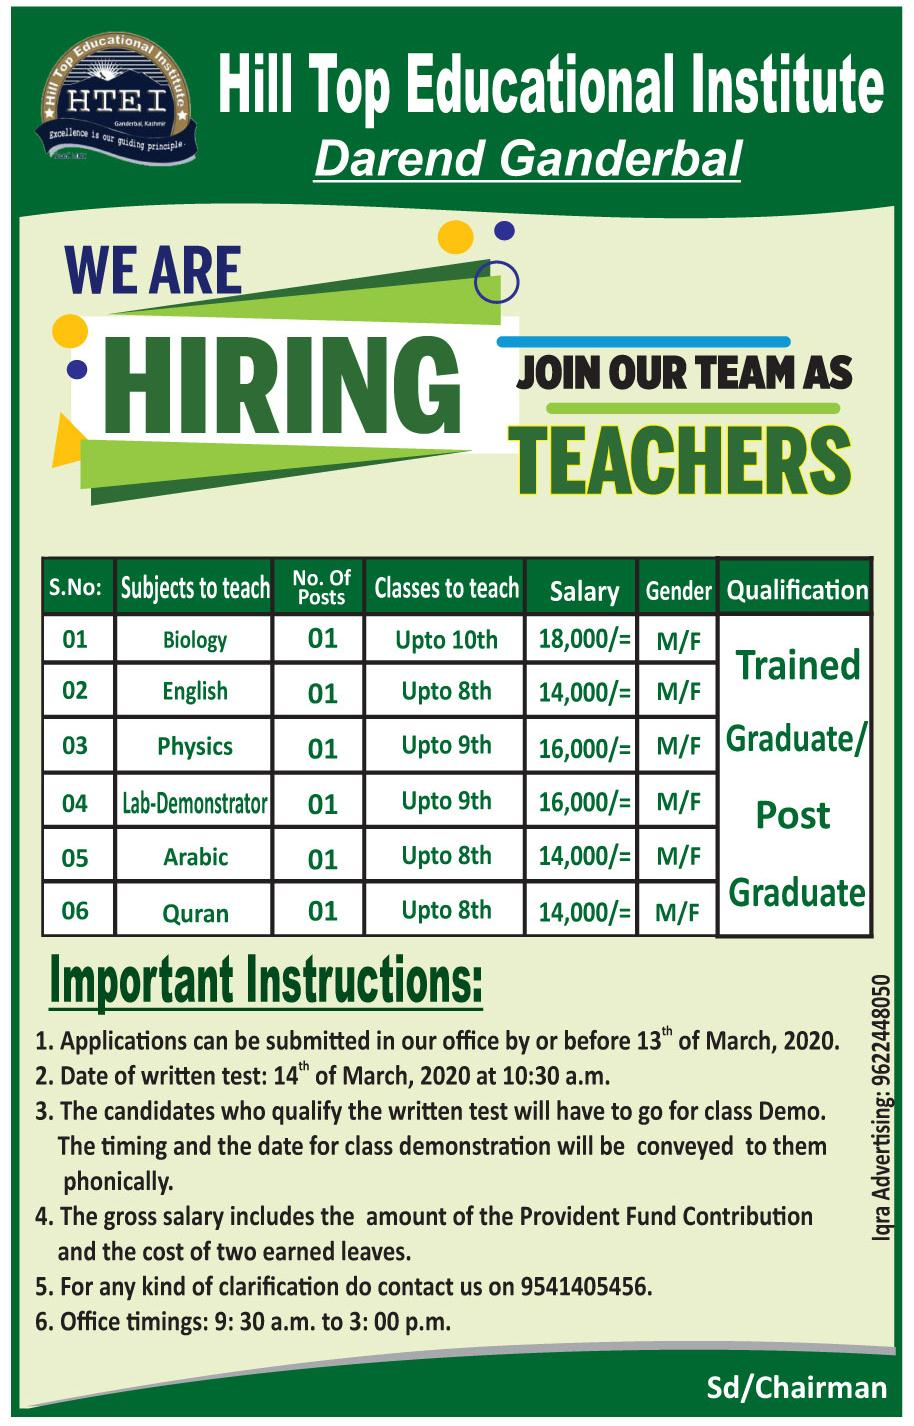 Teaching Jobs march 2020 at Hilltop Educational Institute